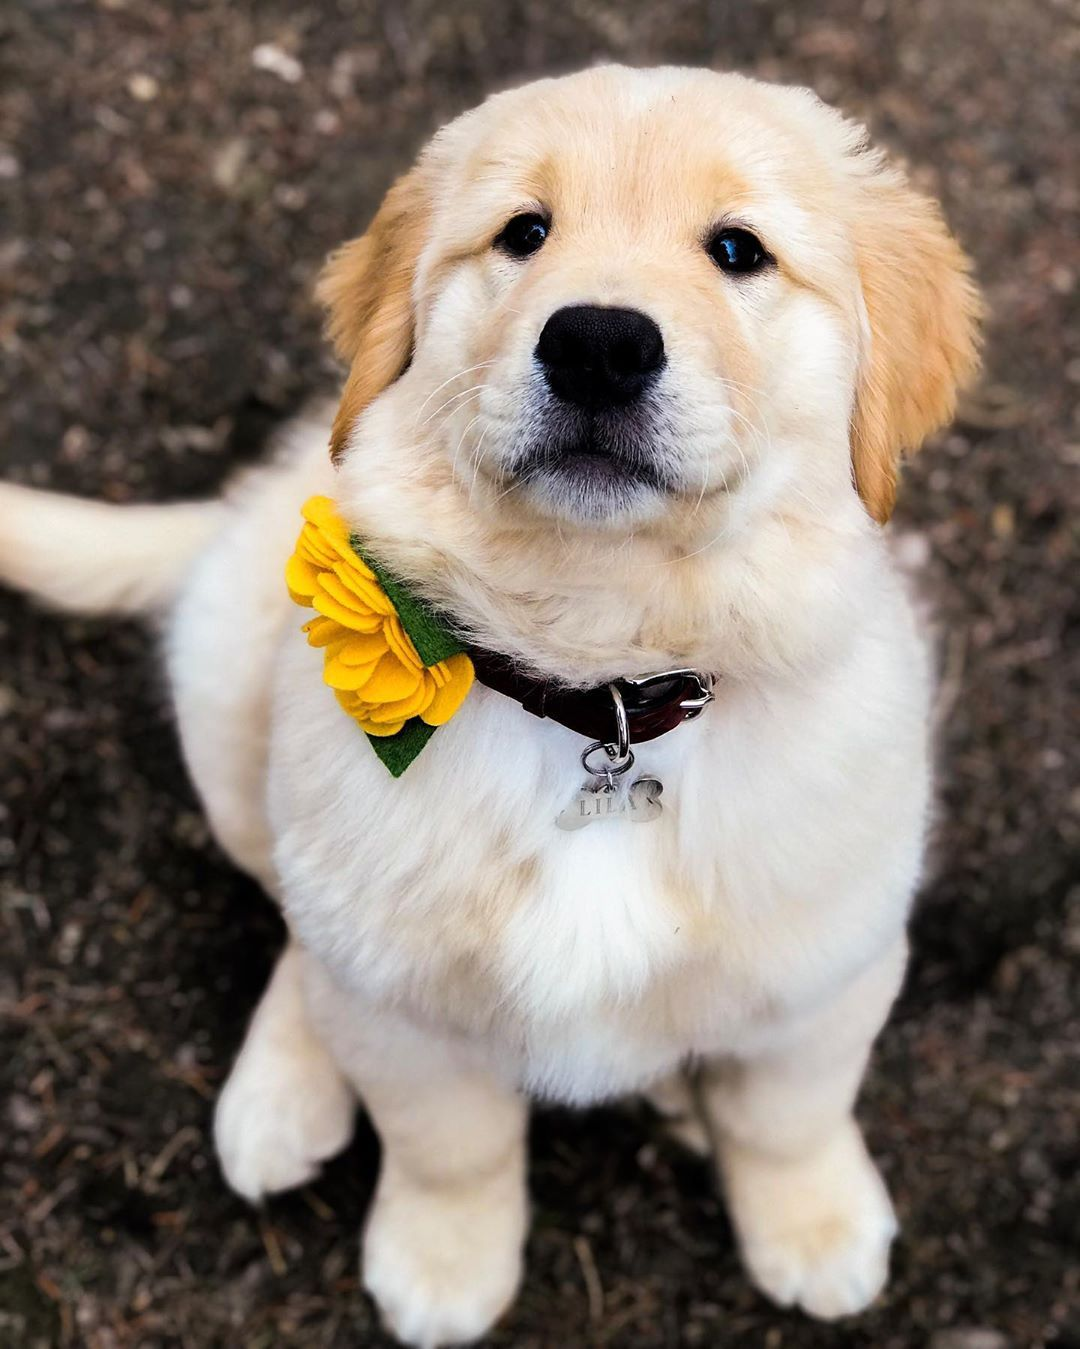 Lila The Golden Retriever On Instagram Still Chilly In Chiberia But I M So Ready For Spring Springtime Lil Golden Retriever Retriever Retriever Puppy